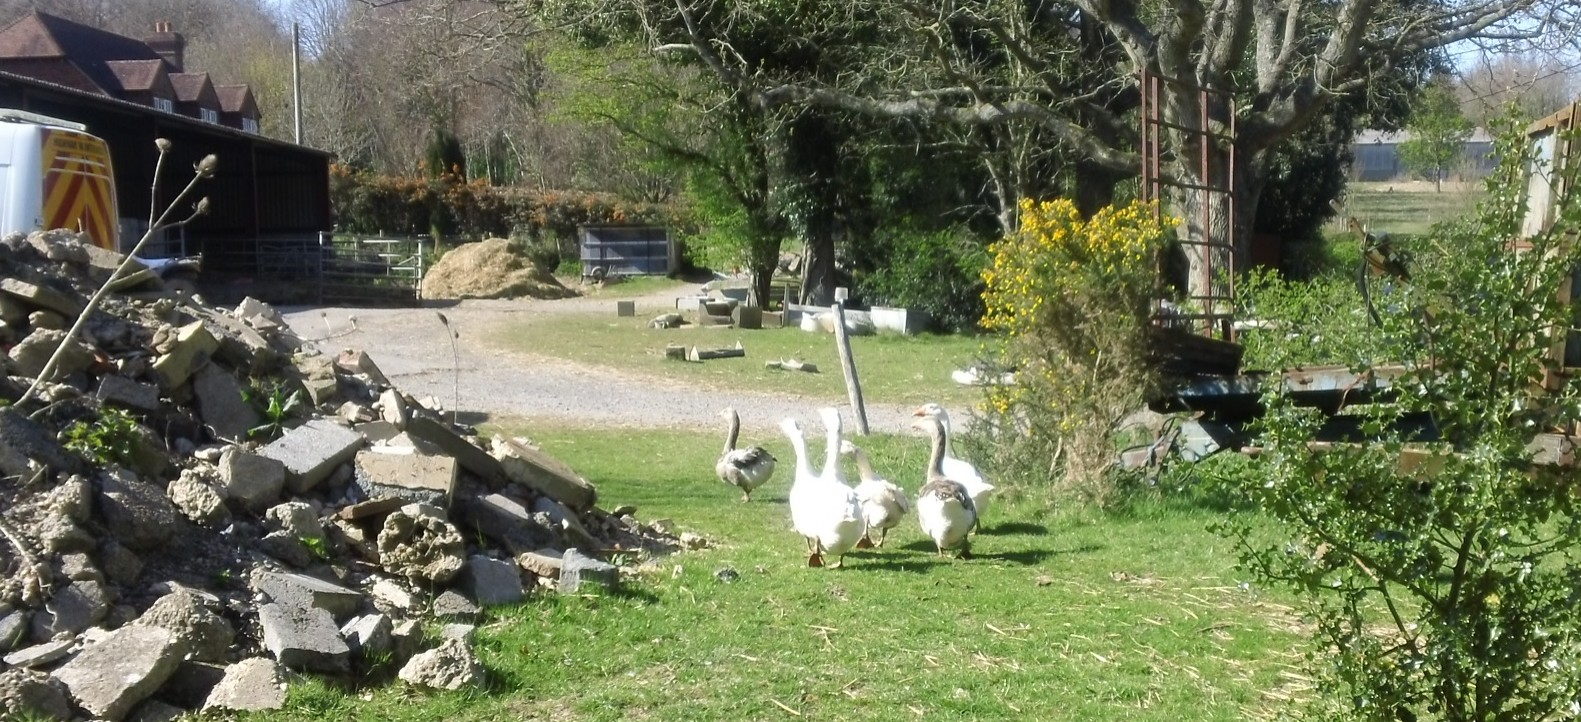 Fleeing geese At a farm near Seddlescombe, Sussex